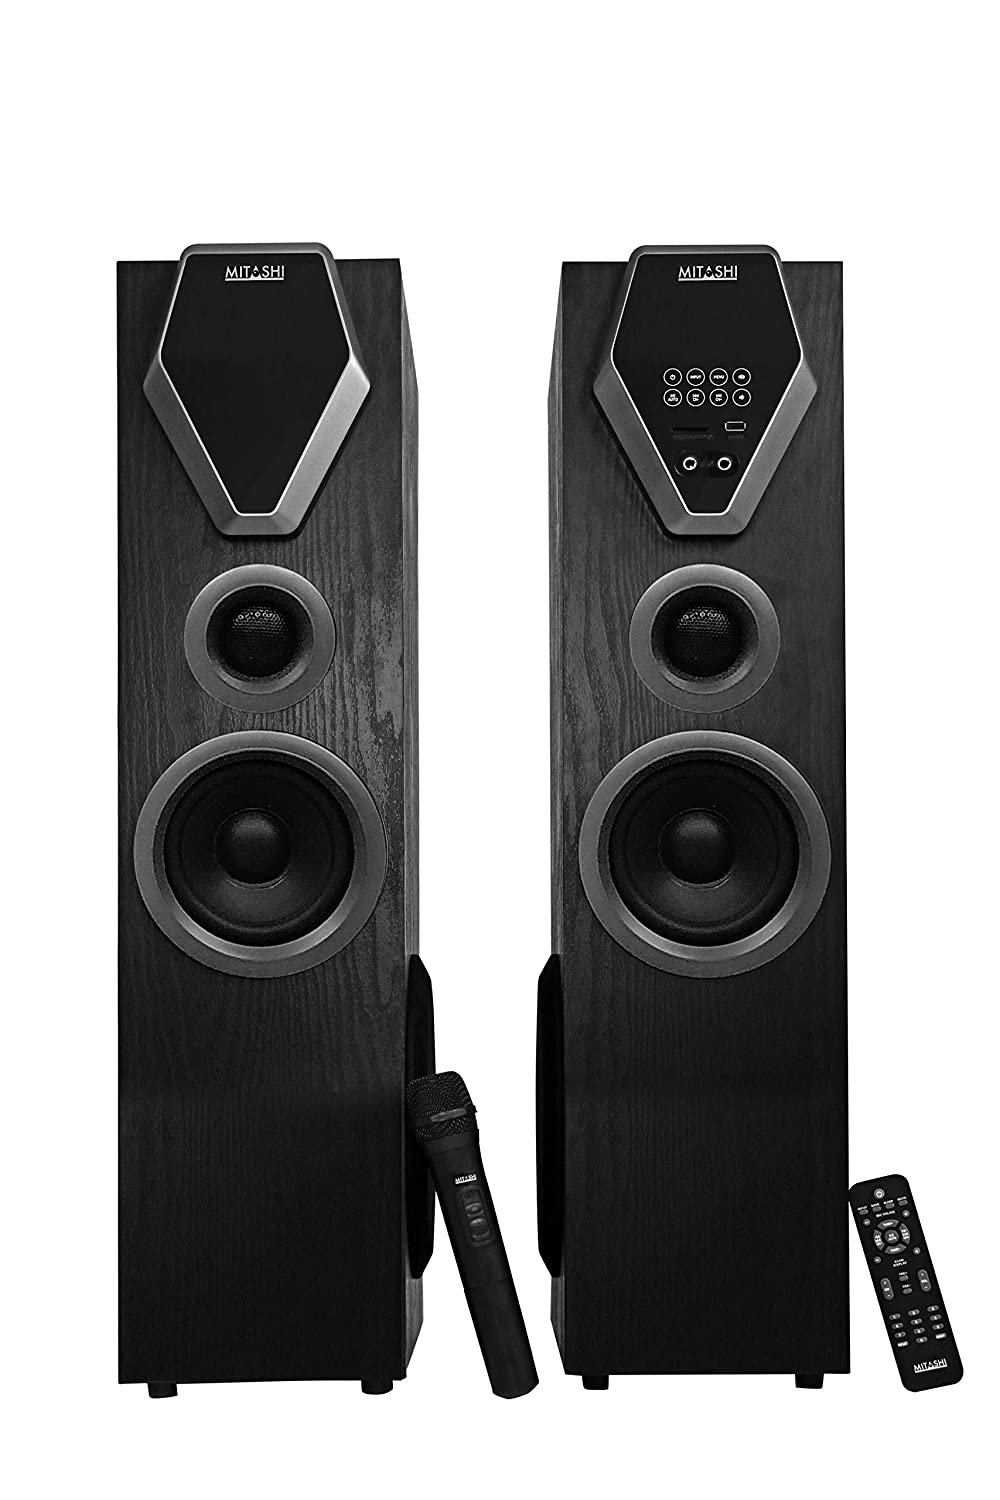 Mitashi TWR 8480 BT 2.0 Channel Tower Speaker with Bluetooth (Black)